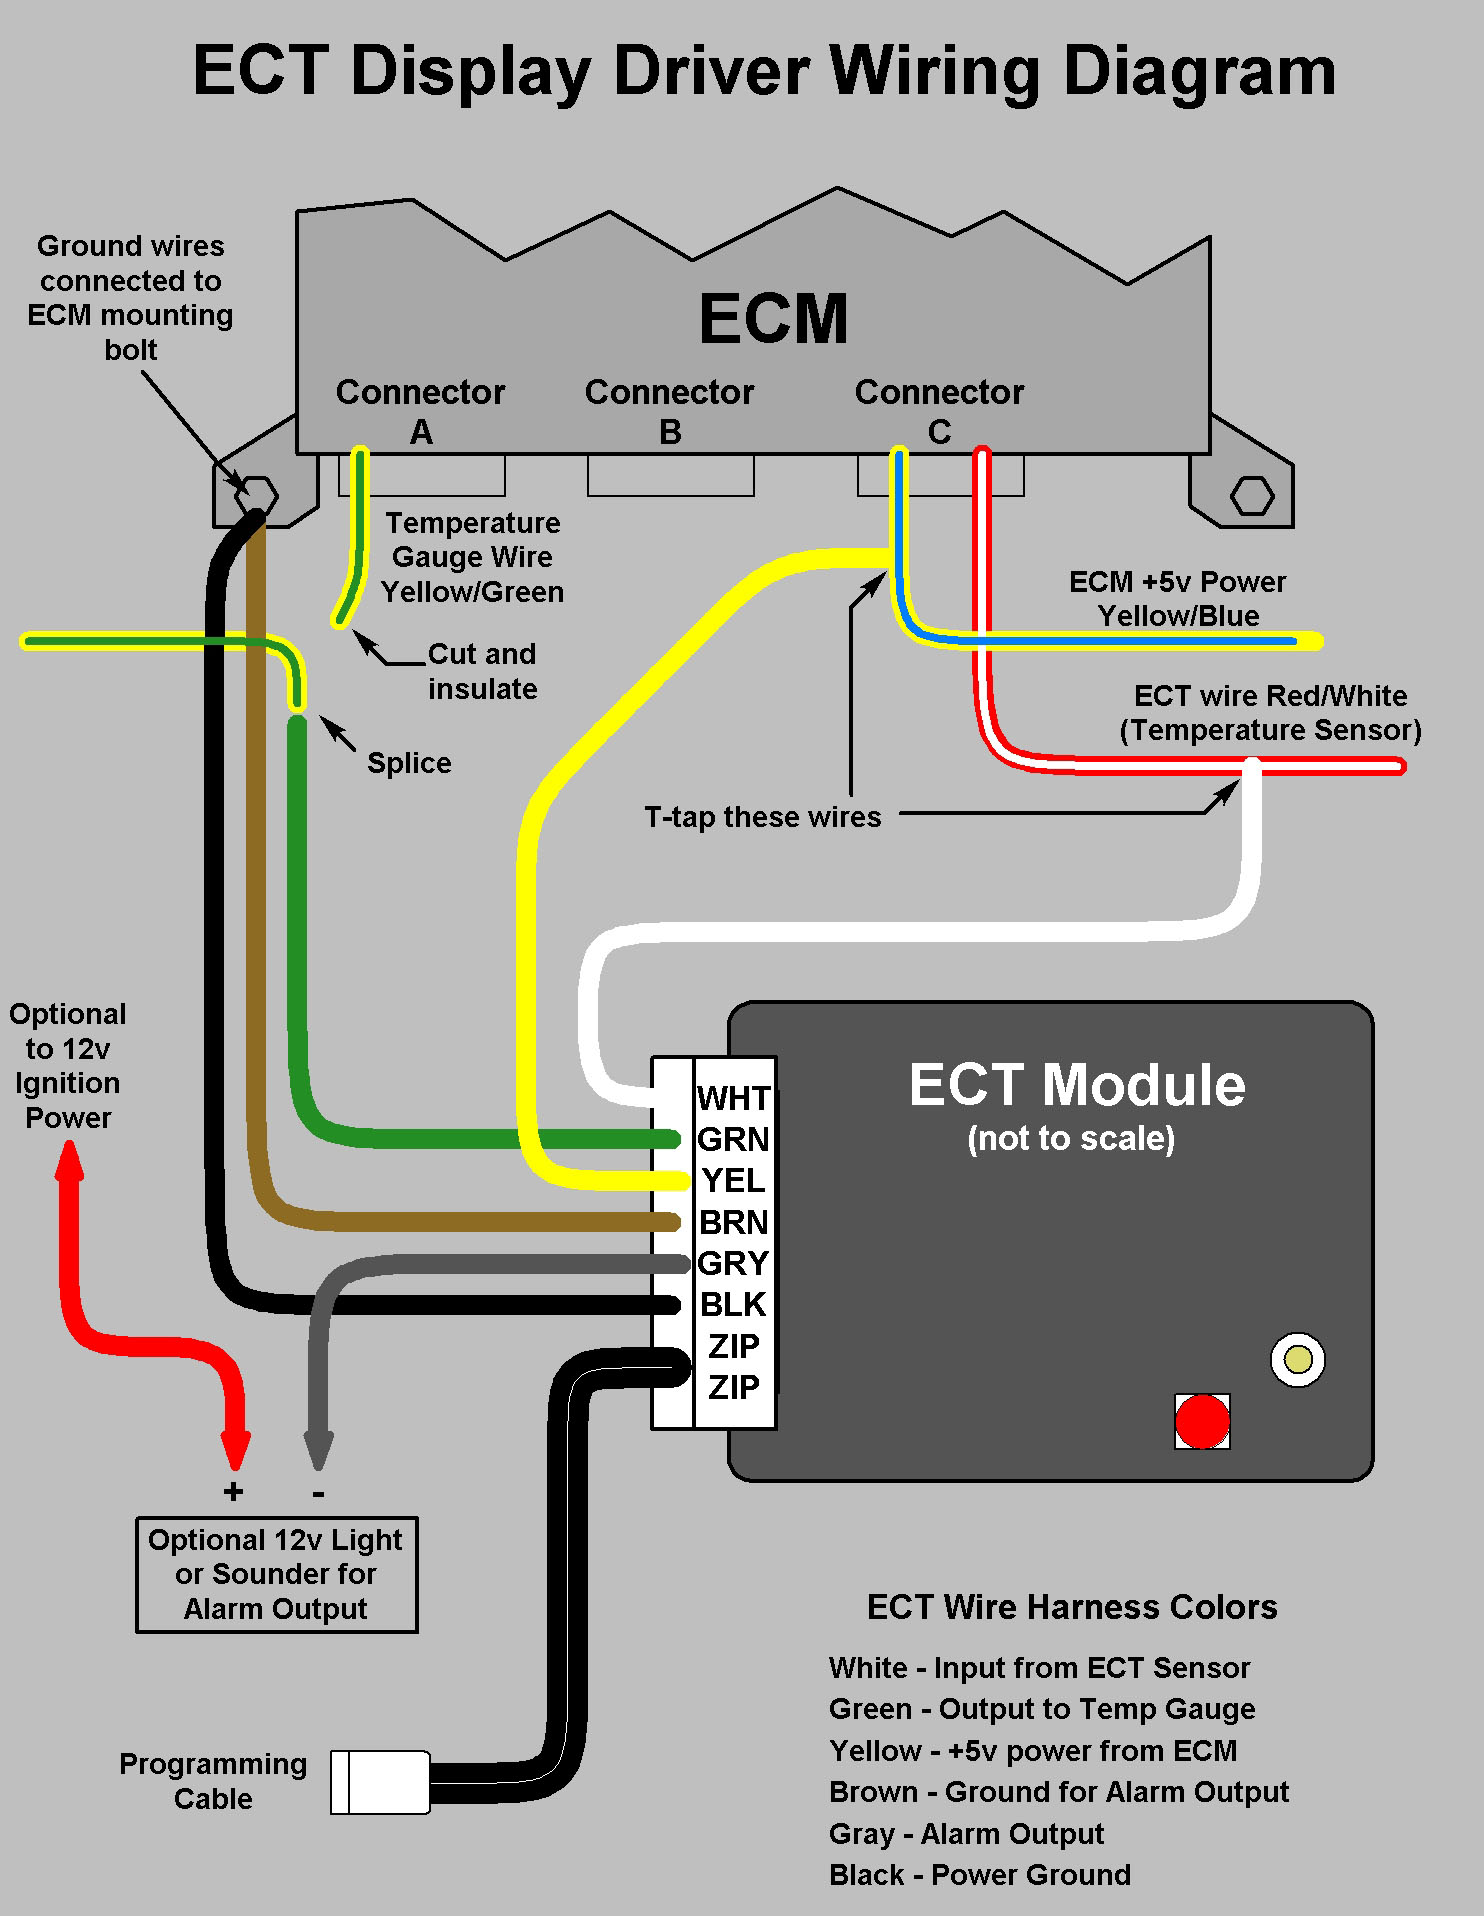 ECT wiring diagram ems wiring diagram management system \u2022 wiring diagrams j squared co edison plug wiring diagram at highcare.asia